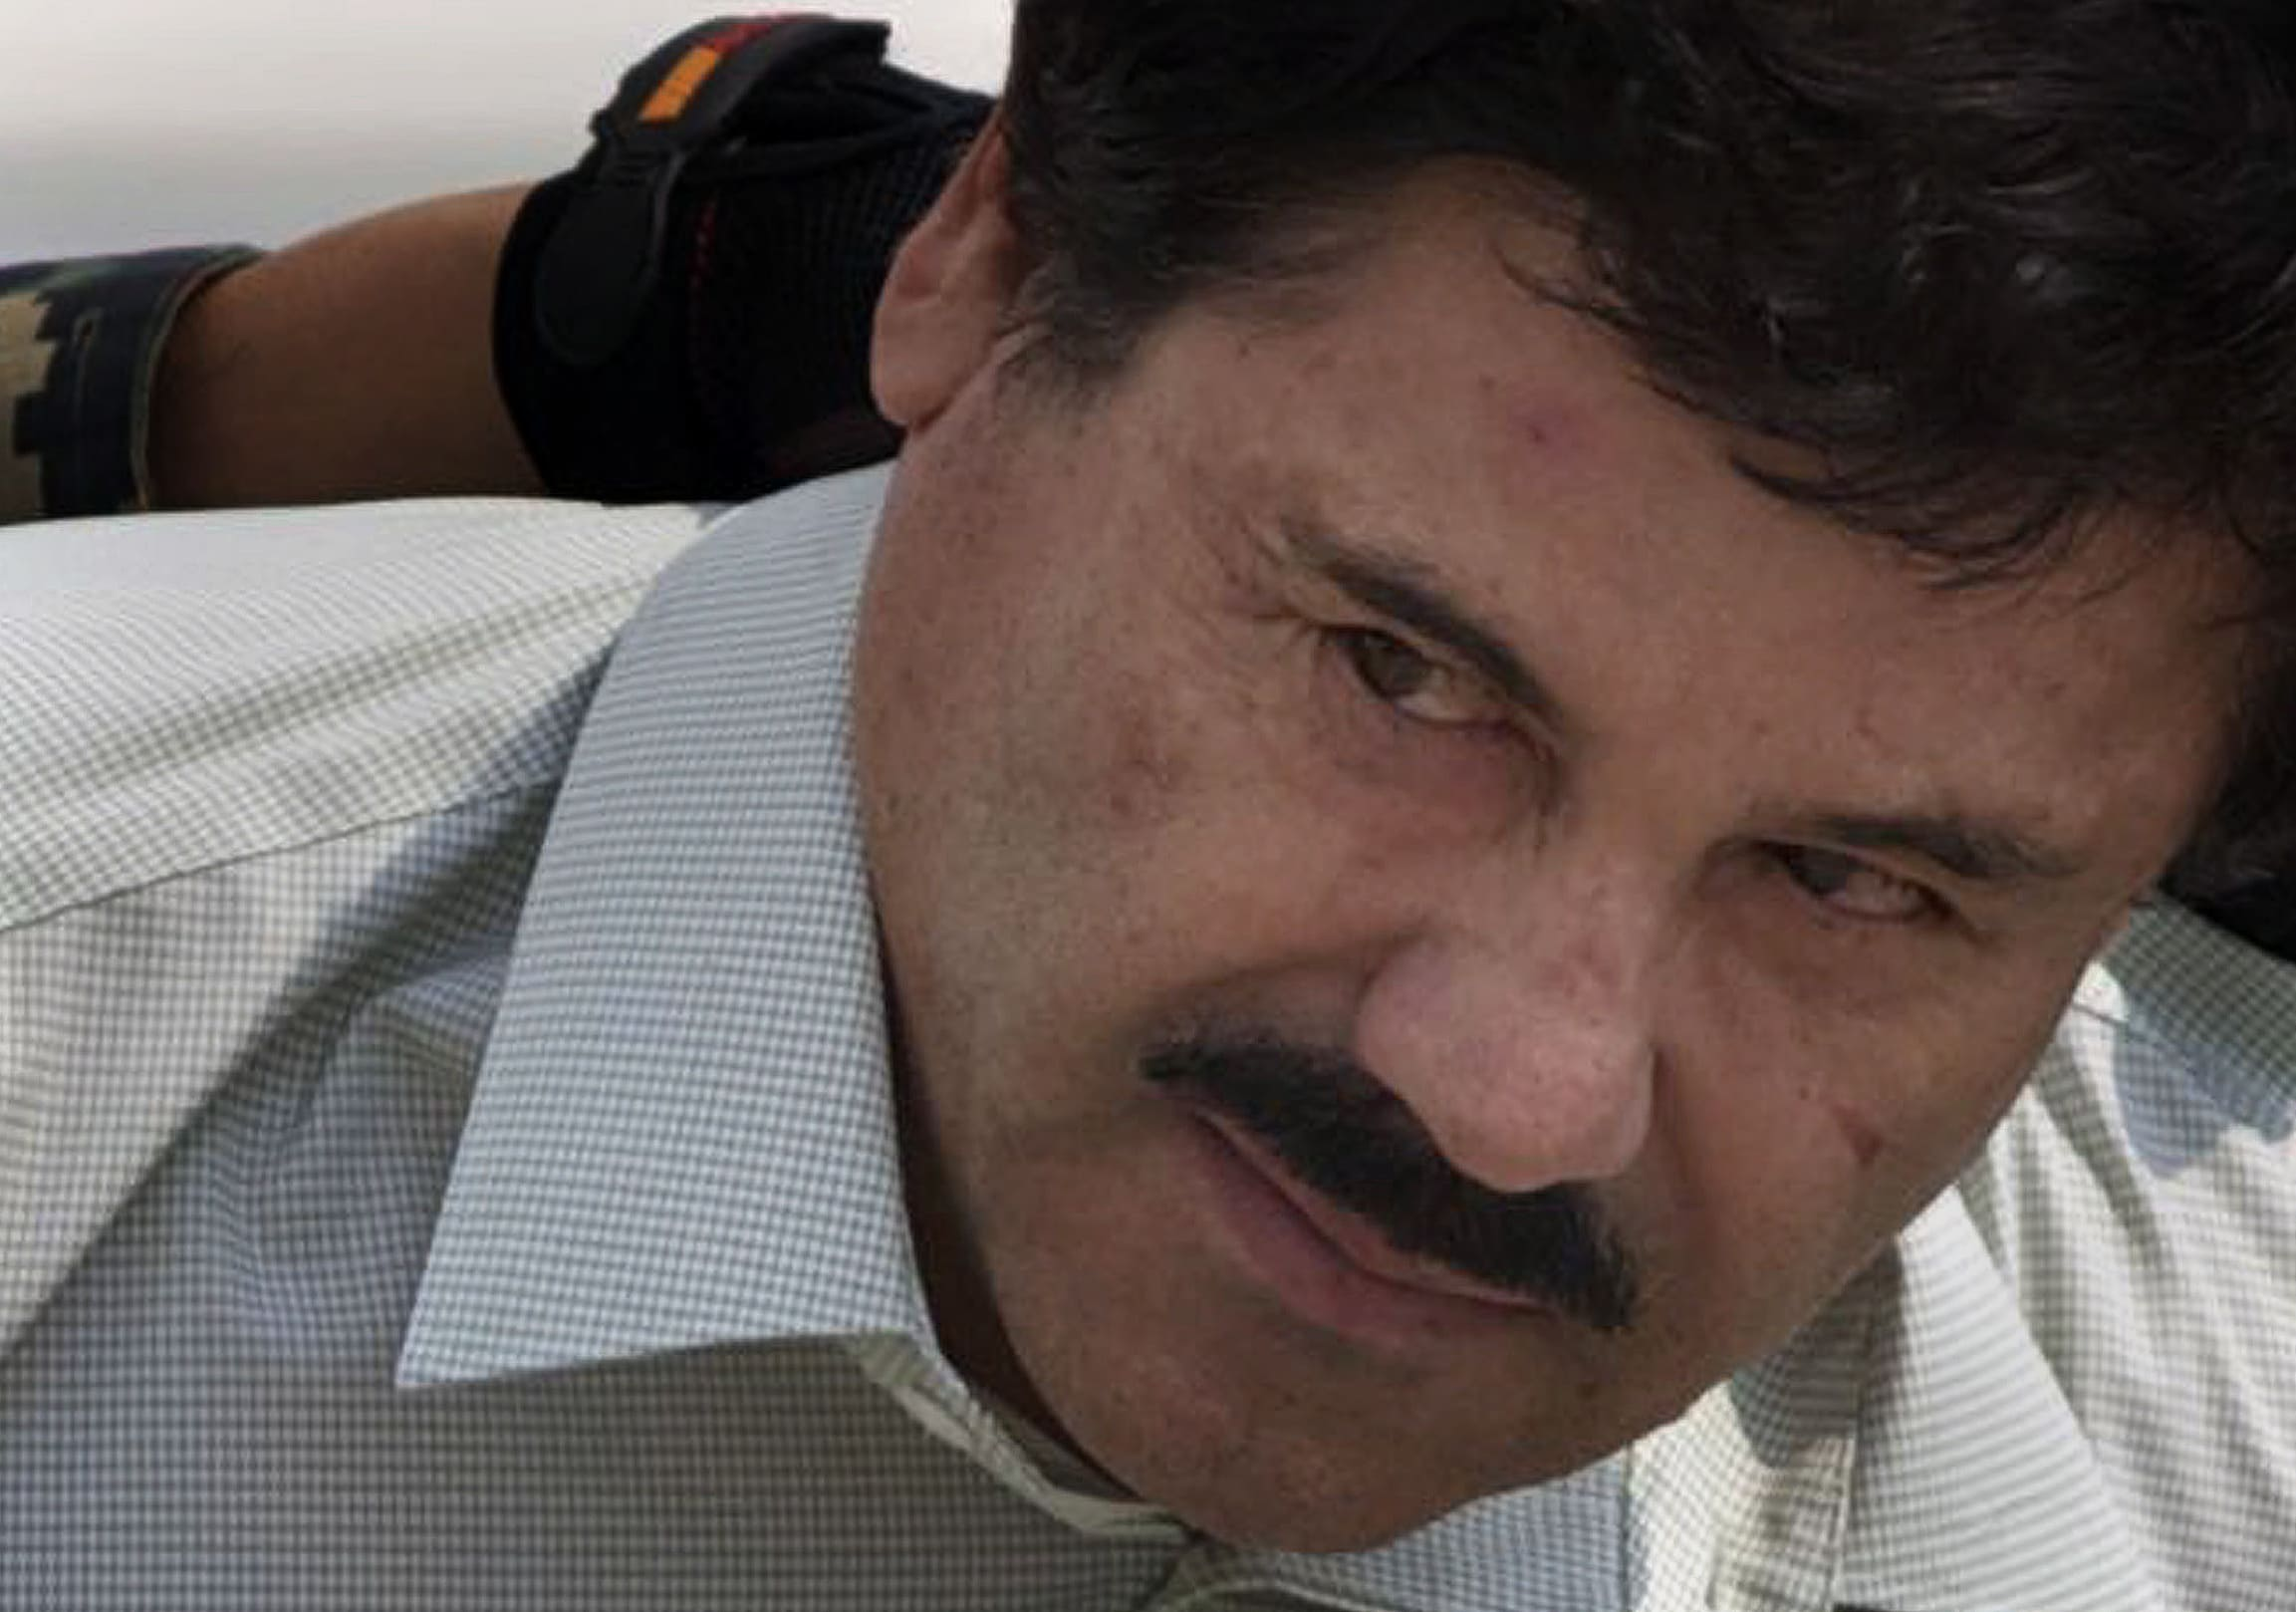 El video de la nieta de El Chapo que está causando revuelo (VIDEO)